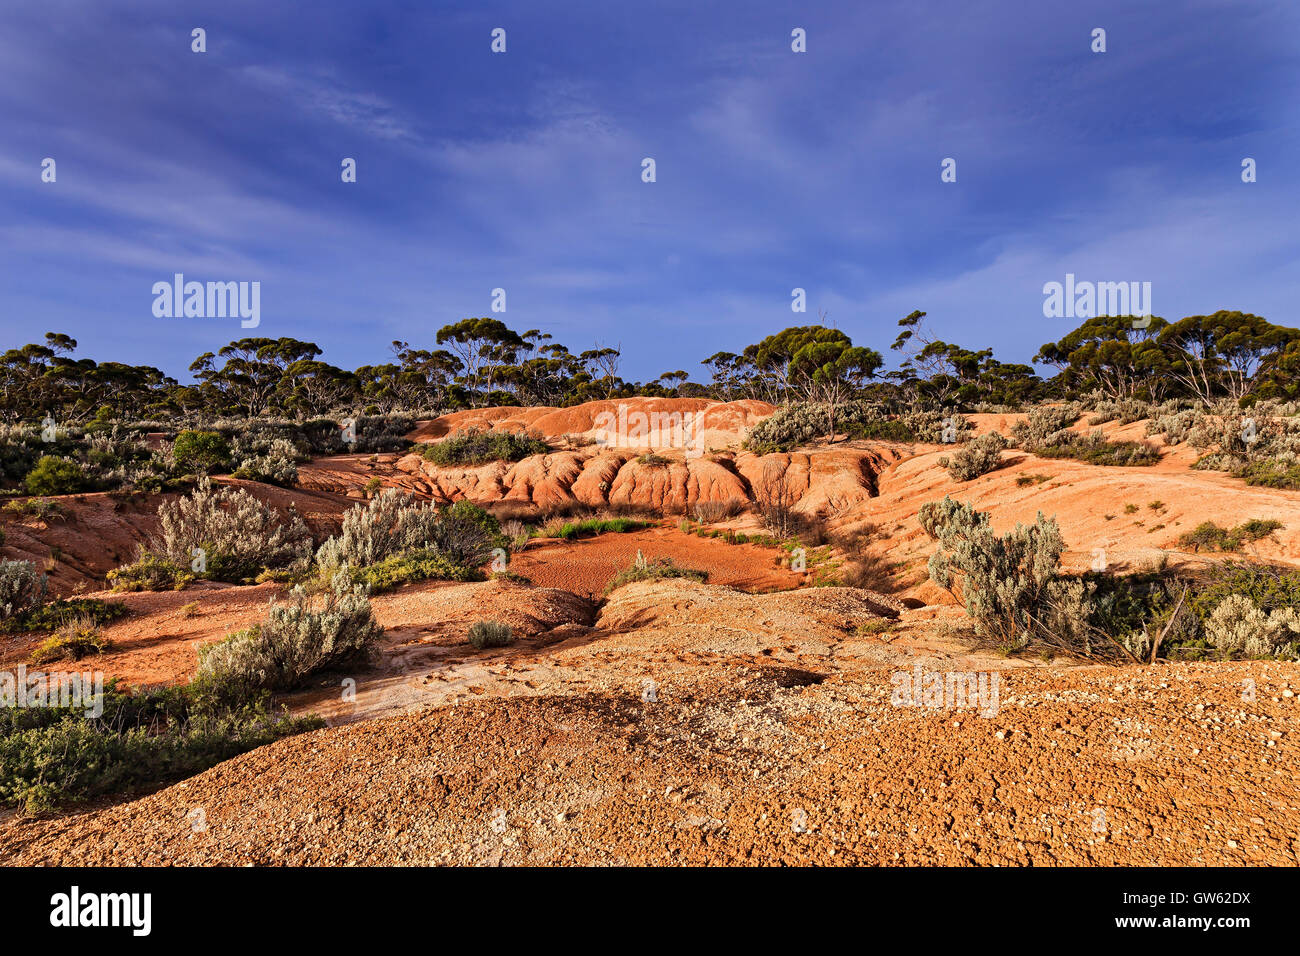 Dry waterless billabong in arid climate of remote outback in Western Australia near Balladonia roadhouse before - Stock Image